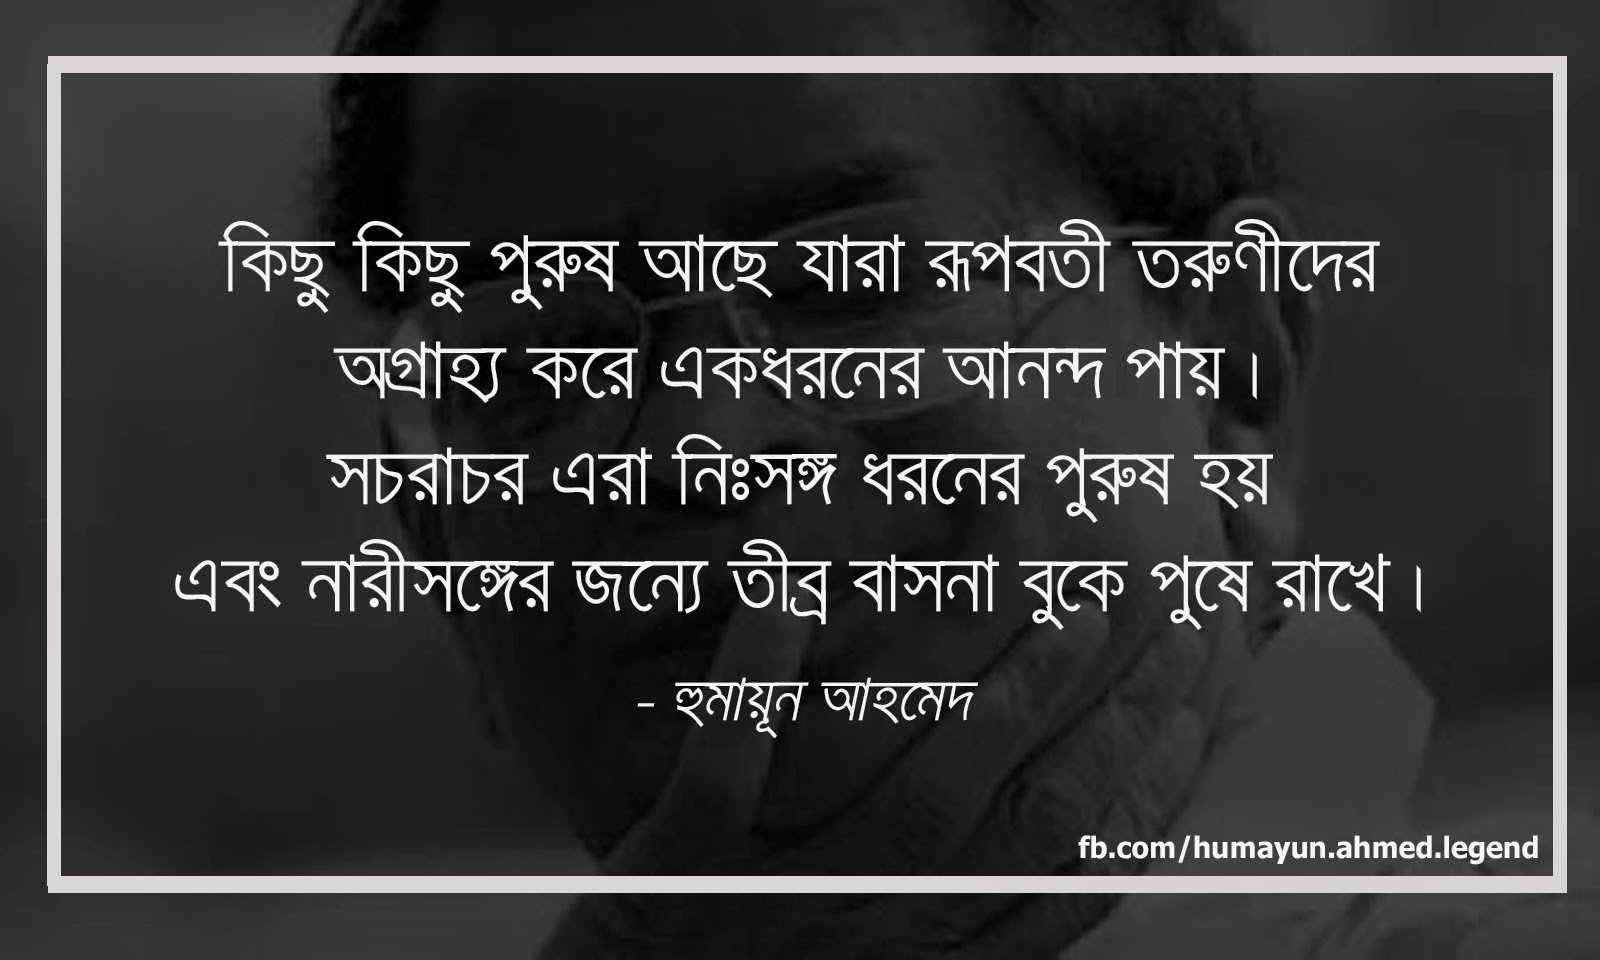 Heroes Saying Humayun Ahmeds Bengali Quotes About Men